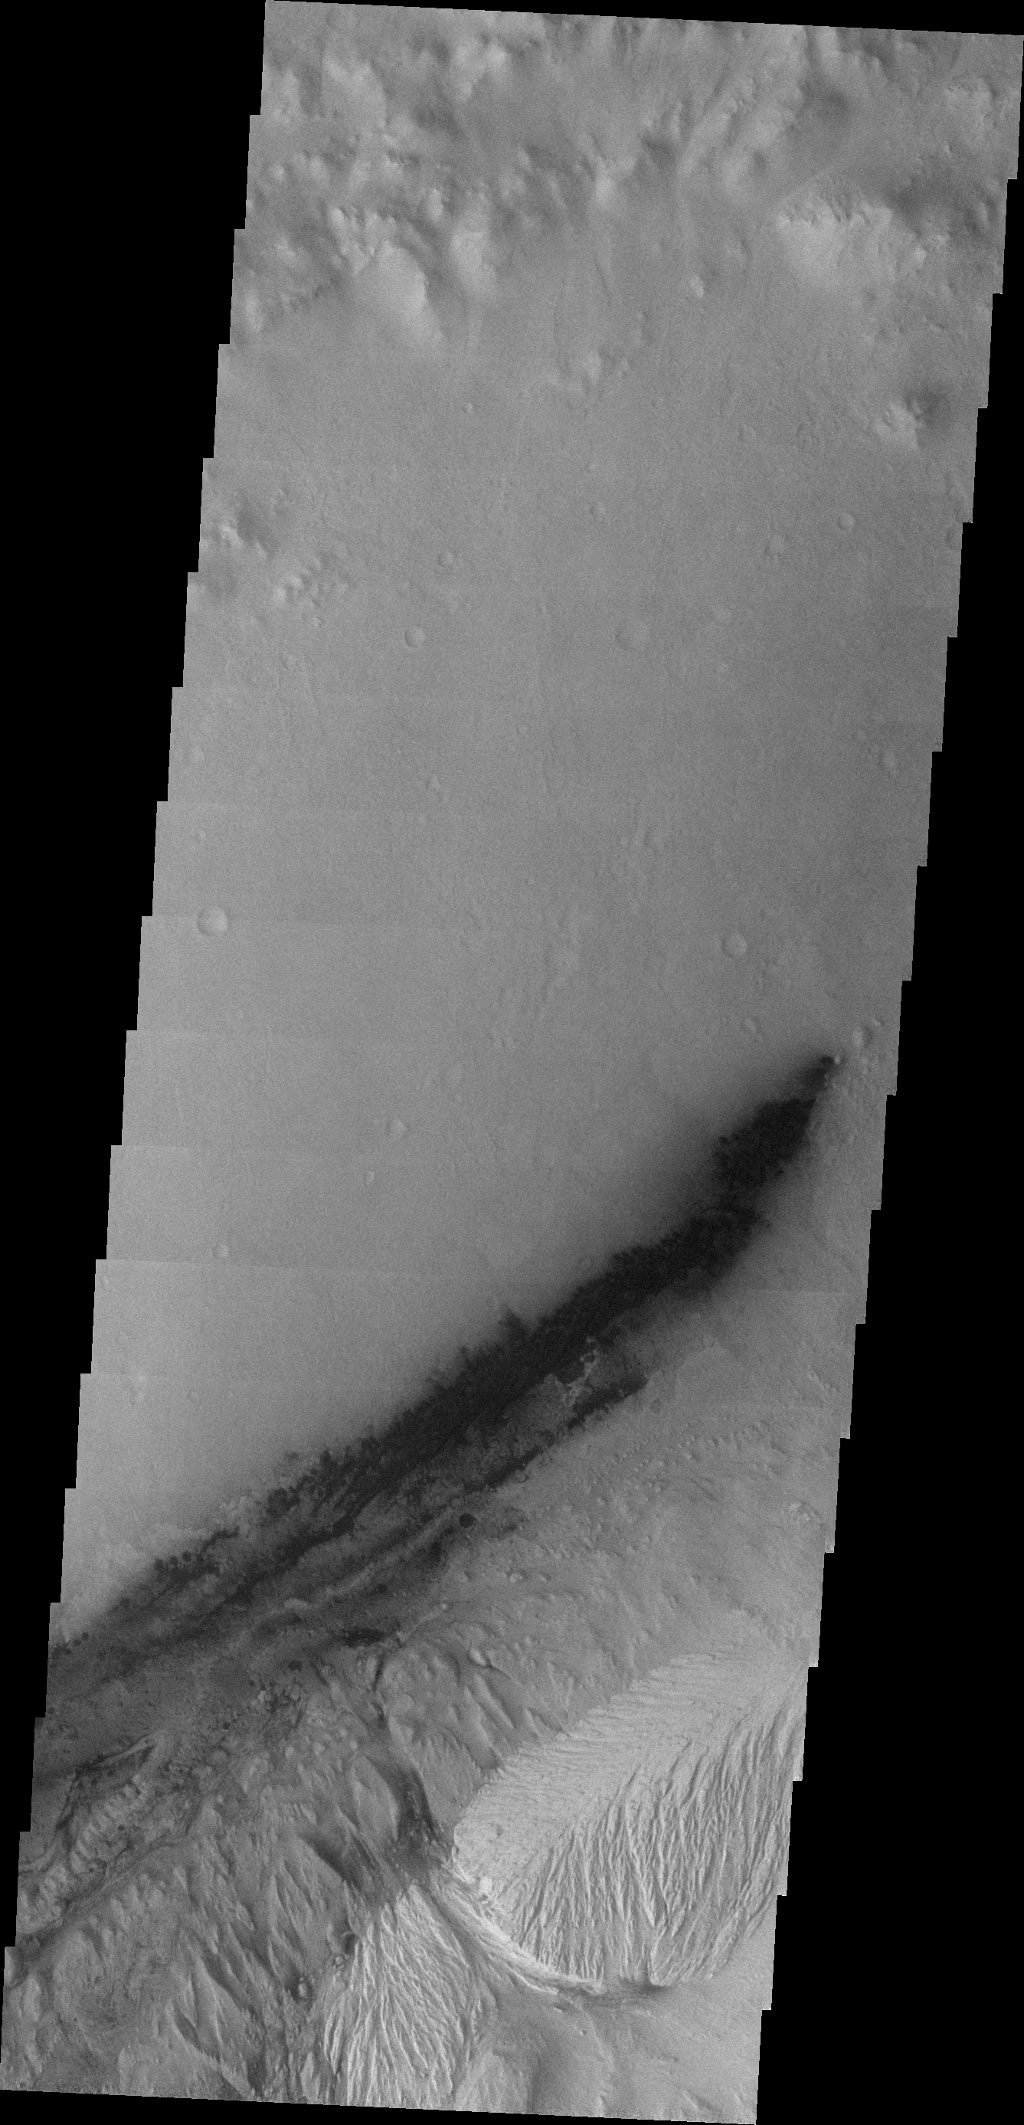 This image captured by NASA's 2001 Mars Odyssey spacecraft shows Gale Crater, which contains the landing site of the Mars rover, Curiosity; the rover will have to navigate sand dunes to get to Mt. Sharp.